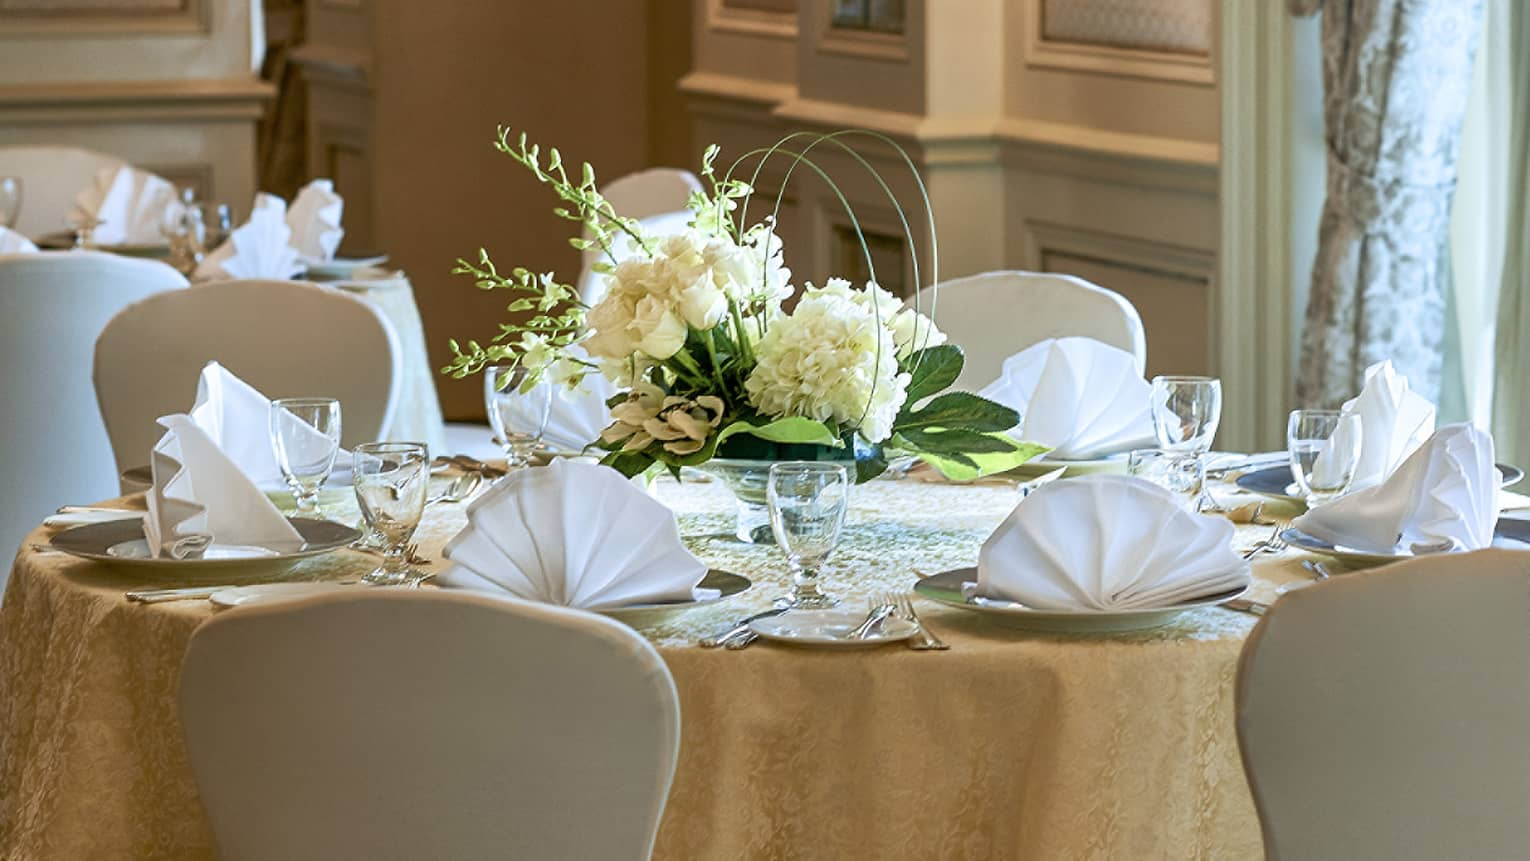 Close-up of banquet dining table with place settings, white flowers, napkins folded like fans